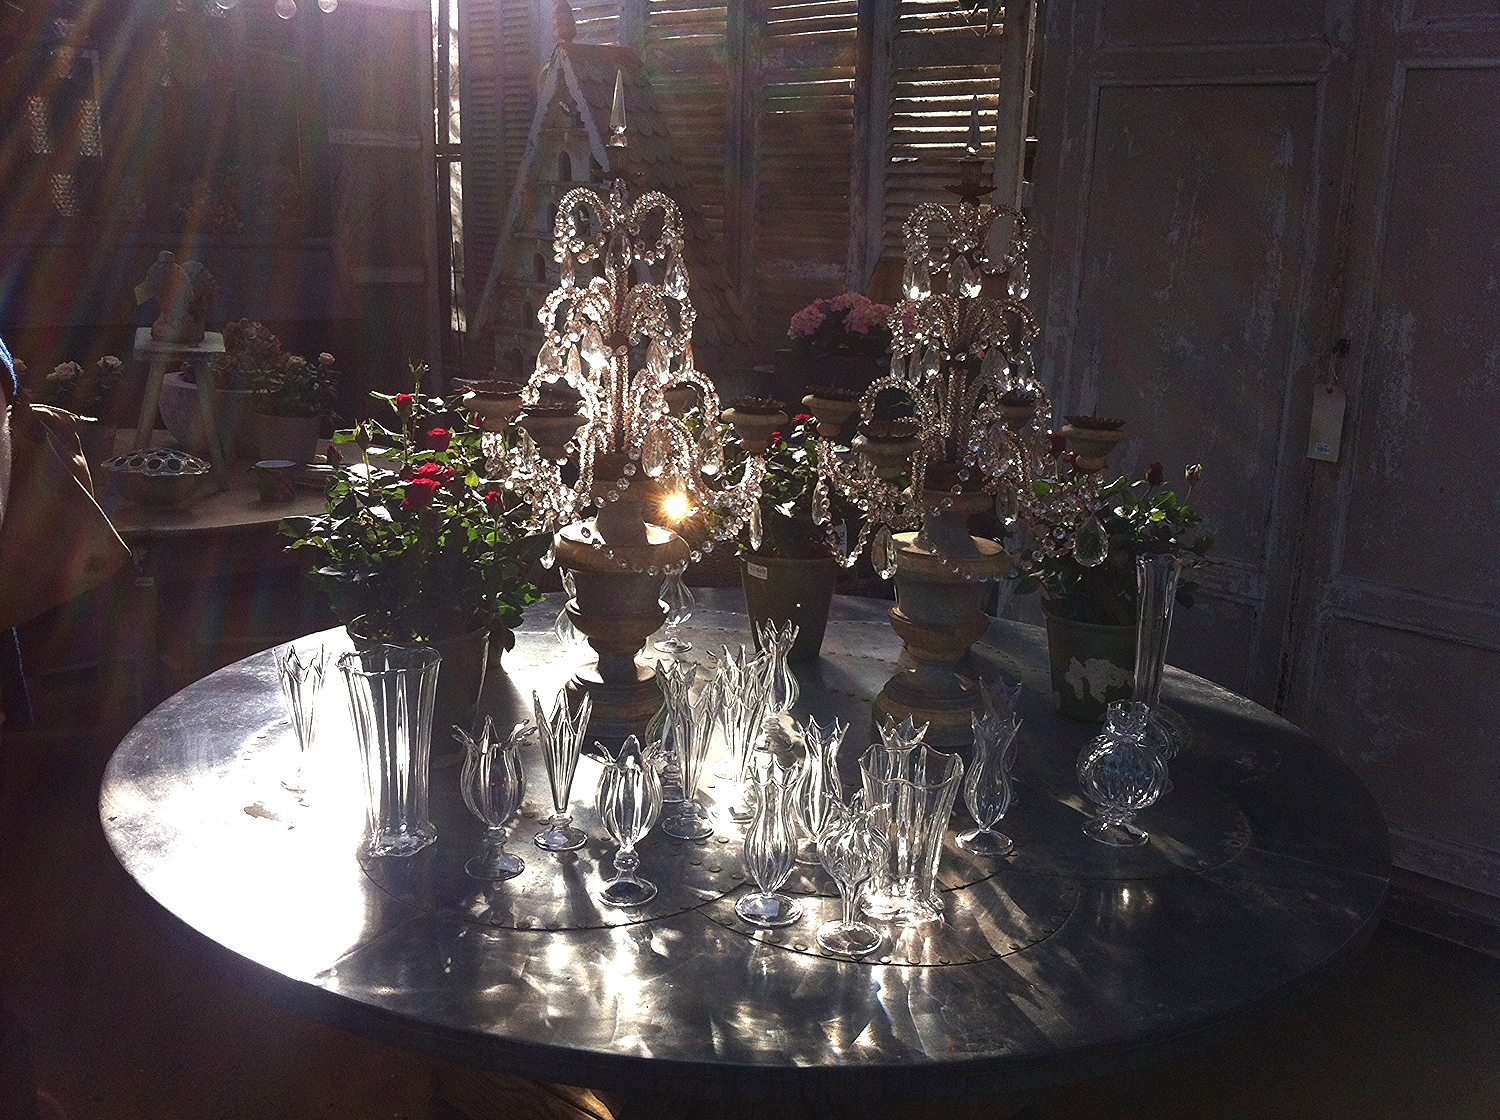 I loved the sunlight on these vintage candelabra and red rose plants